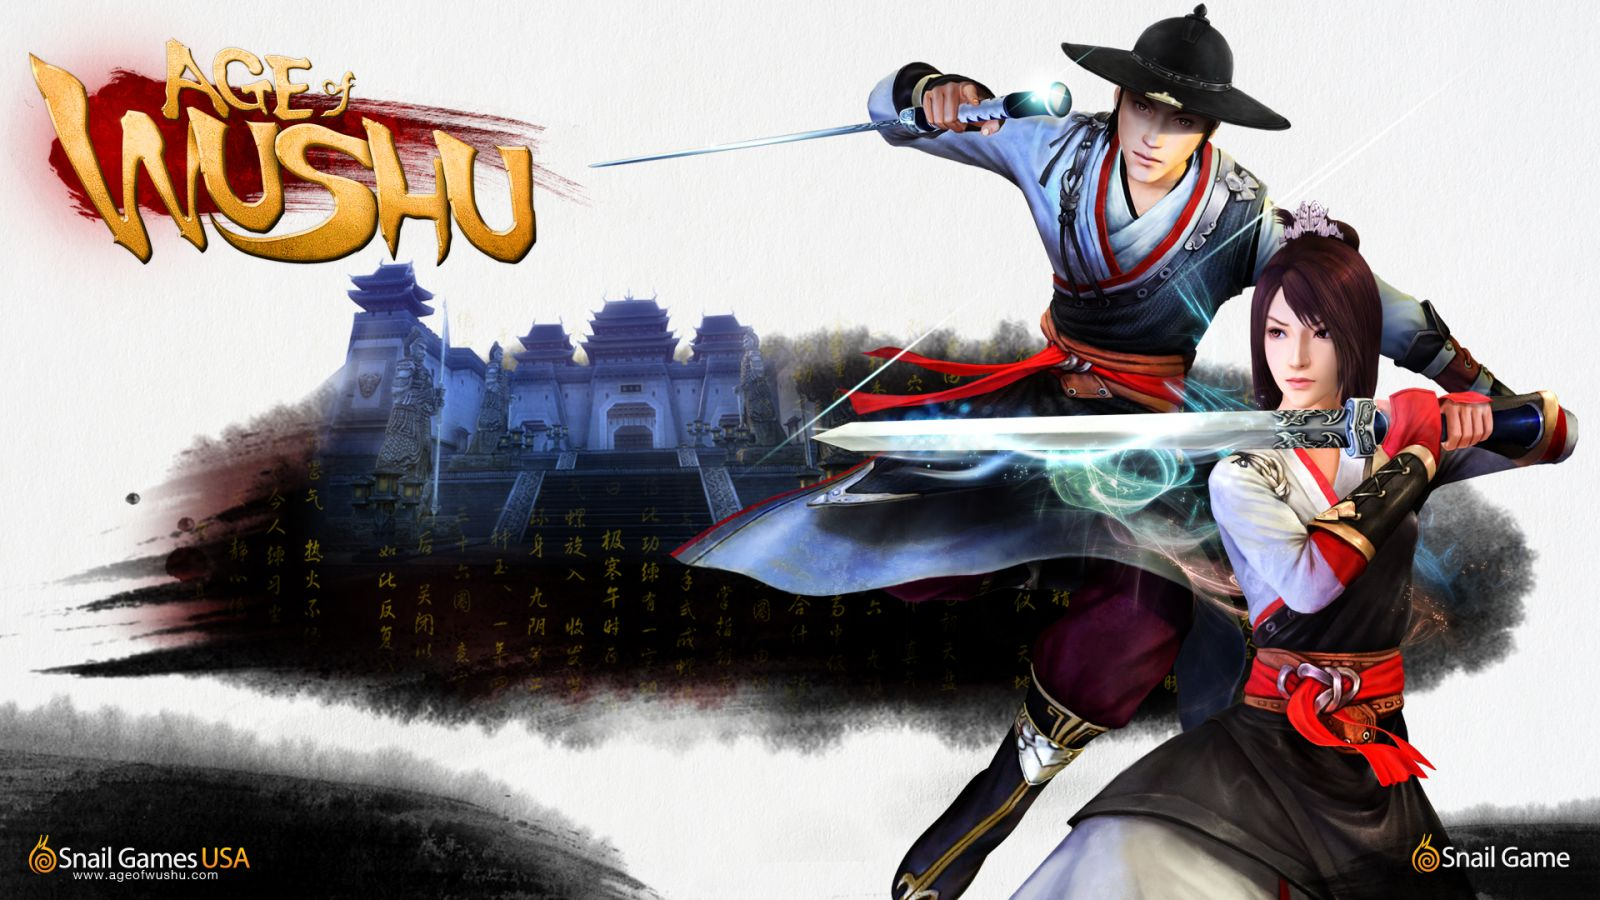 Exclusive: Age of Wushu Dynasty is coming soon to iOS